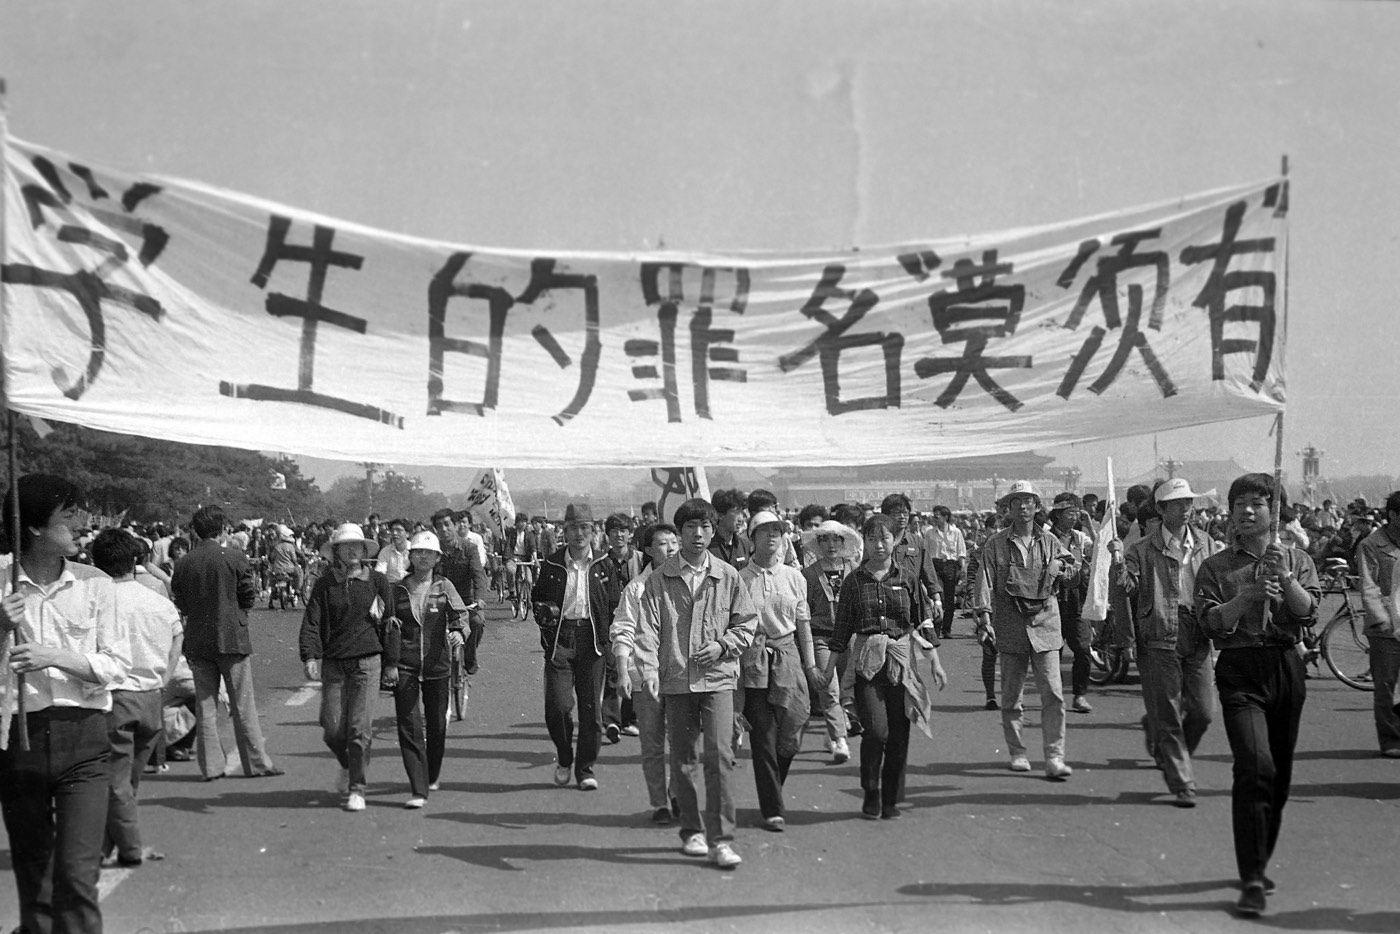 Photos of the Tiananmen Square protests, unseen for 28 years